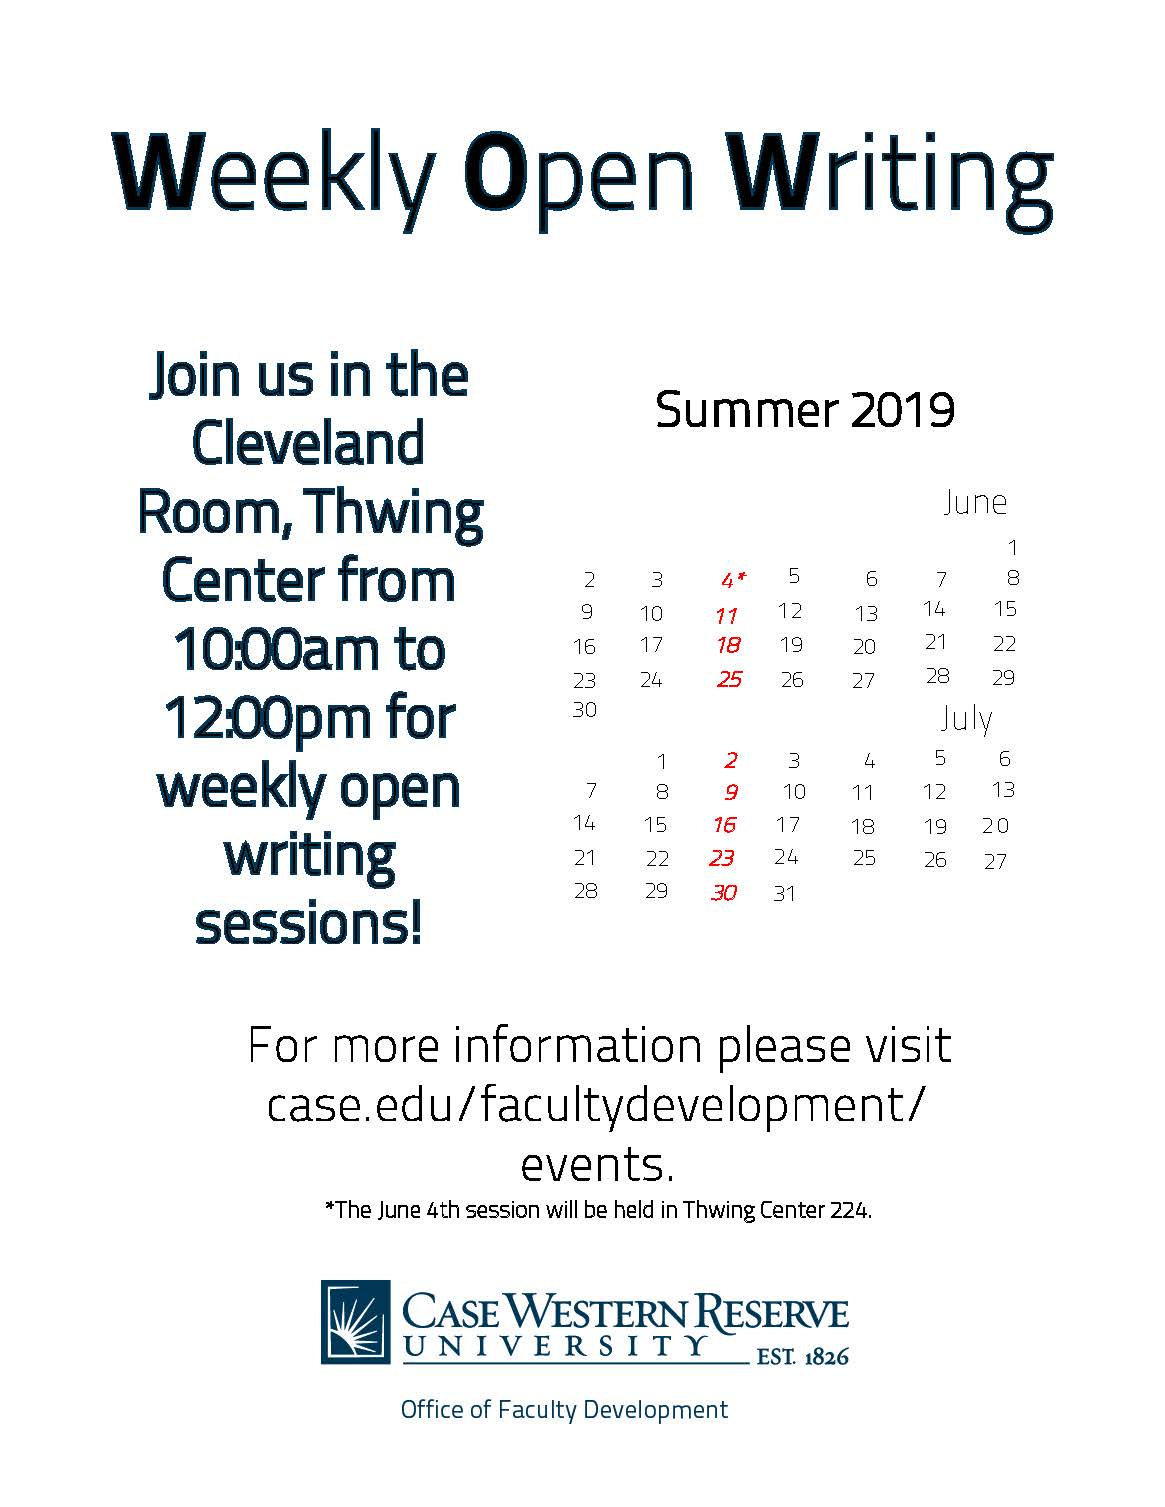 Weekly Open Writing Summer 2019 schedule